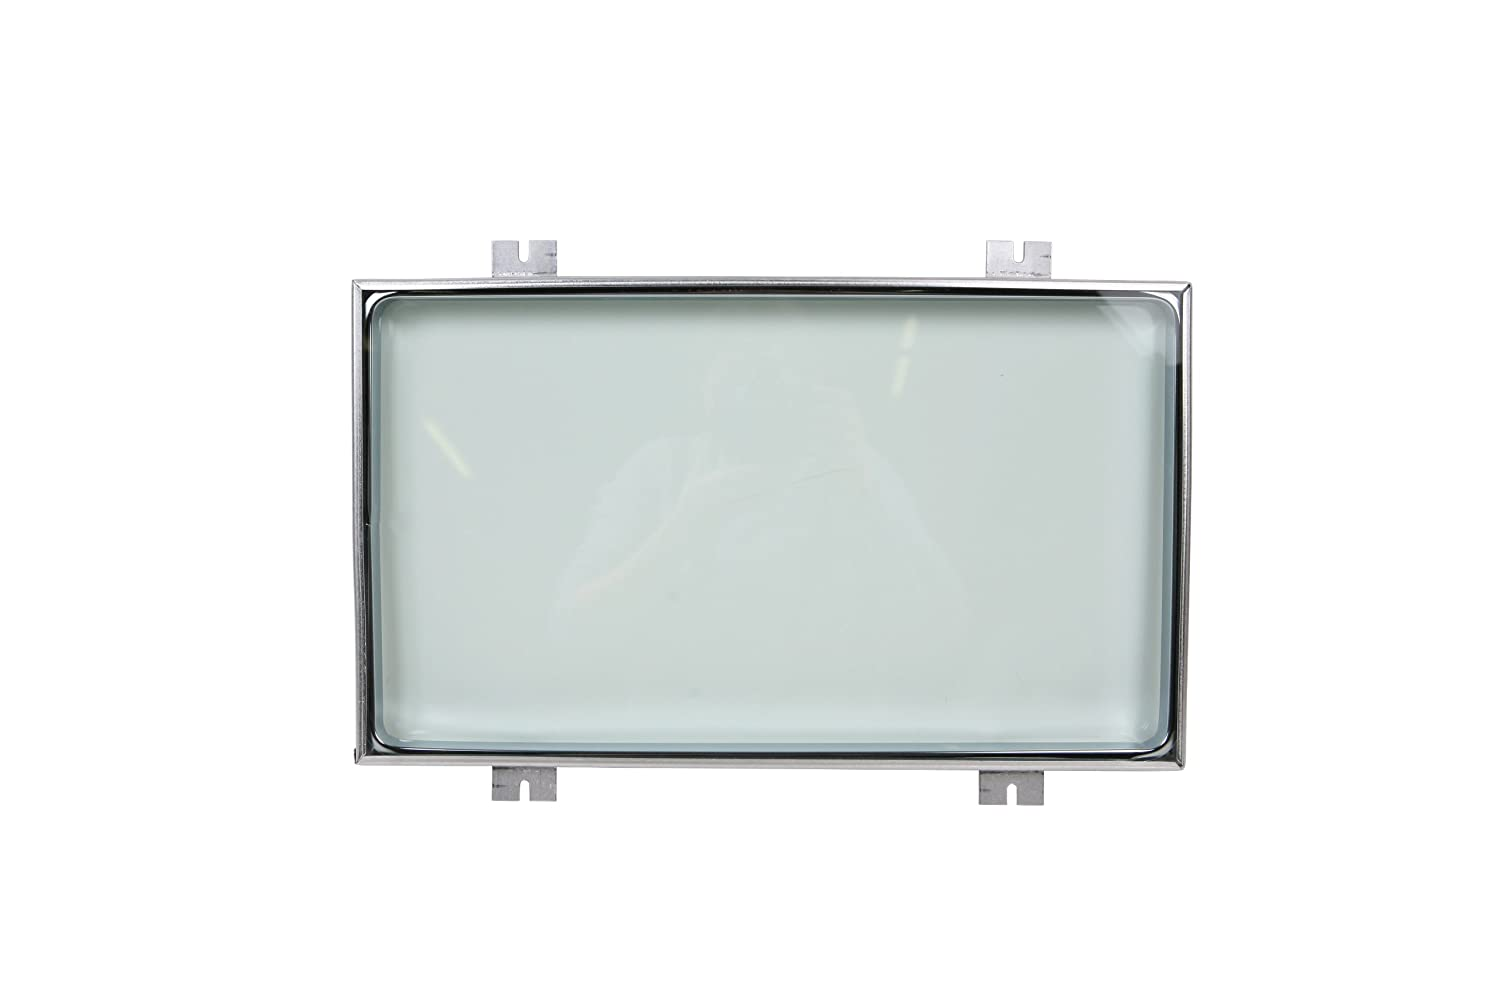 VULCAN HART 358534-1 Oven Door Window by Vulcan Hart  B00EN8NHH8